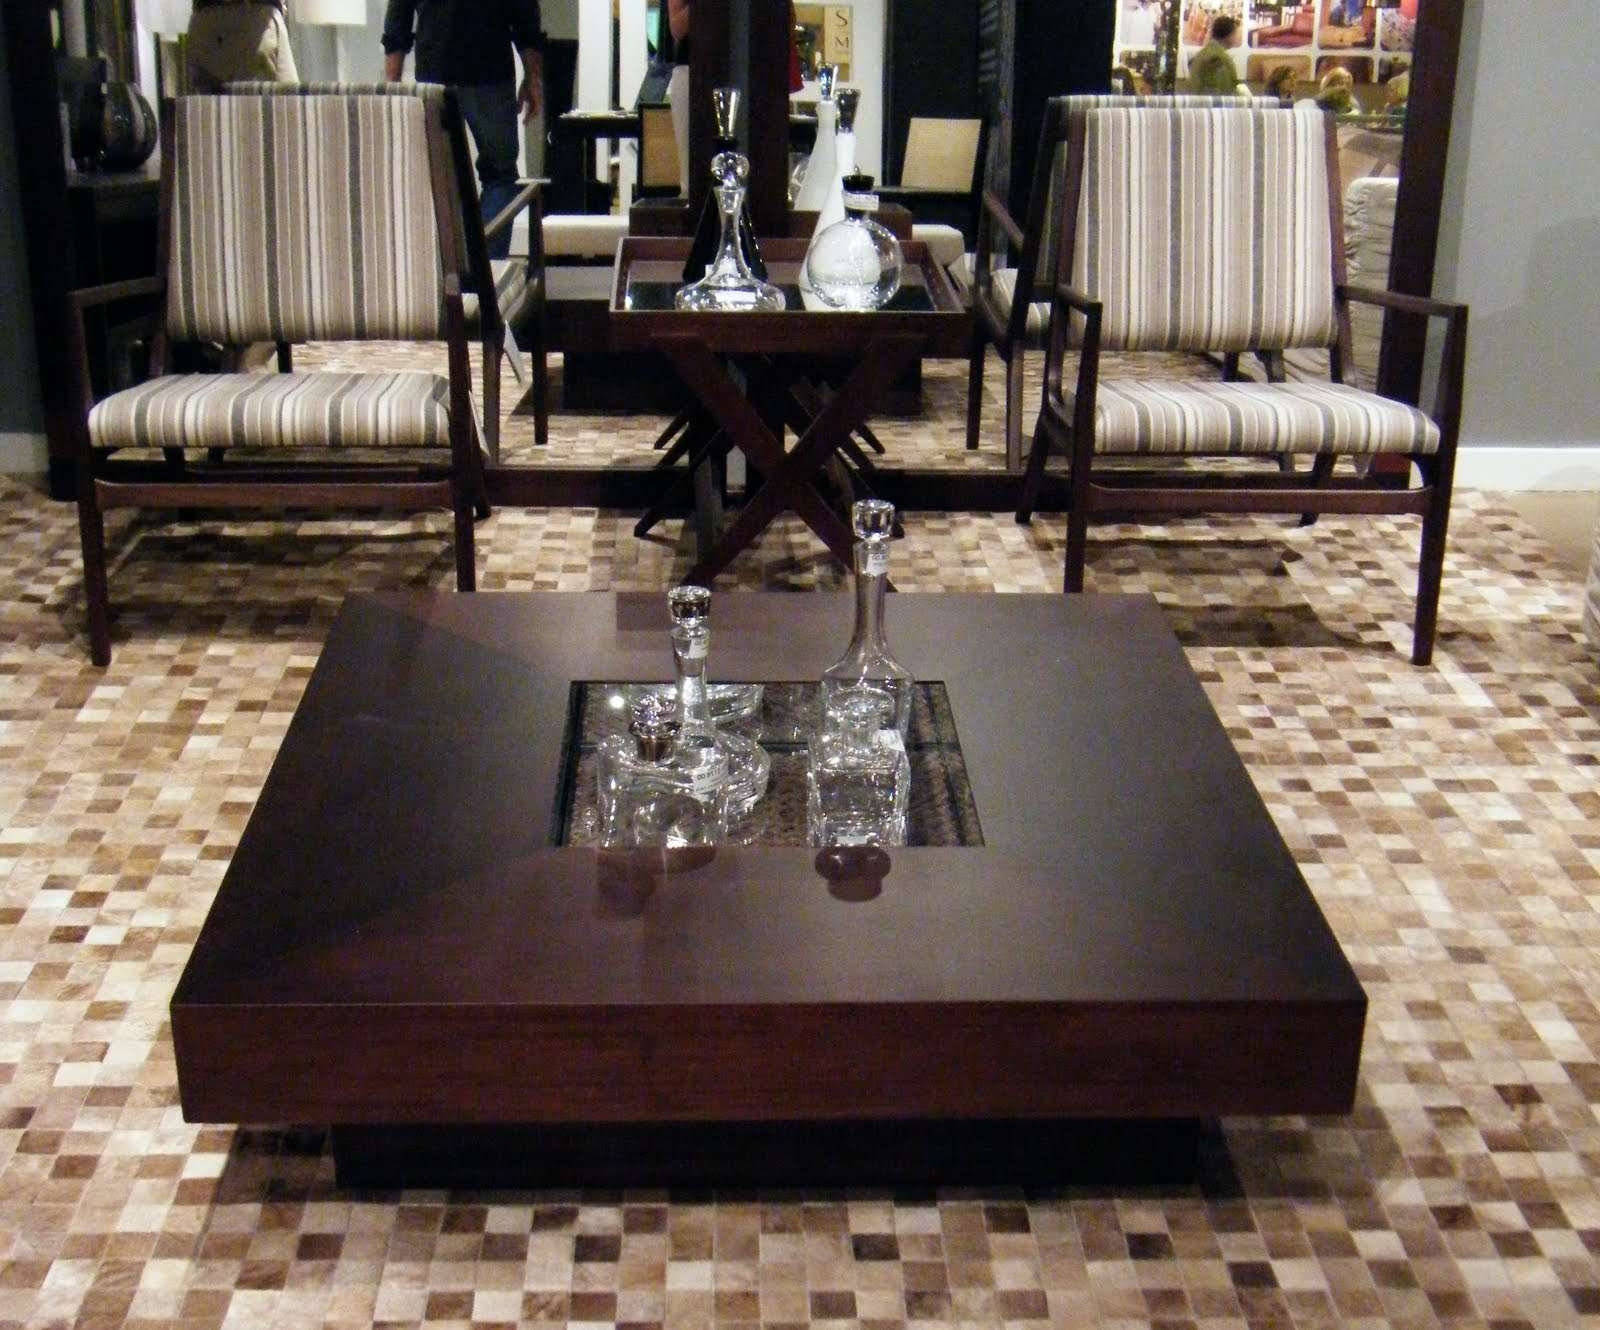 Coffee Table : Magnificent Wood And Glass Coffee Table Black Glass Inside Most Current Big Low Coffee Tables (View 10 of 20)